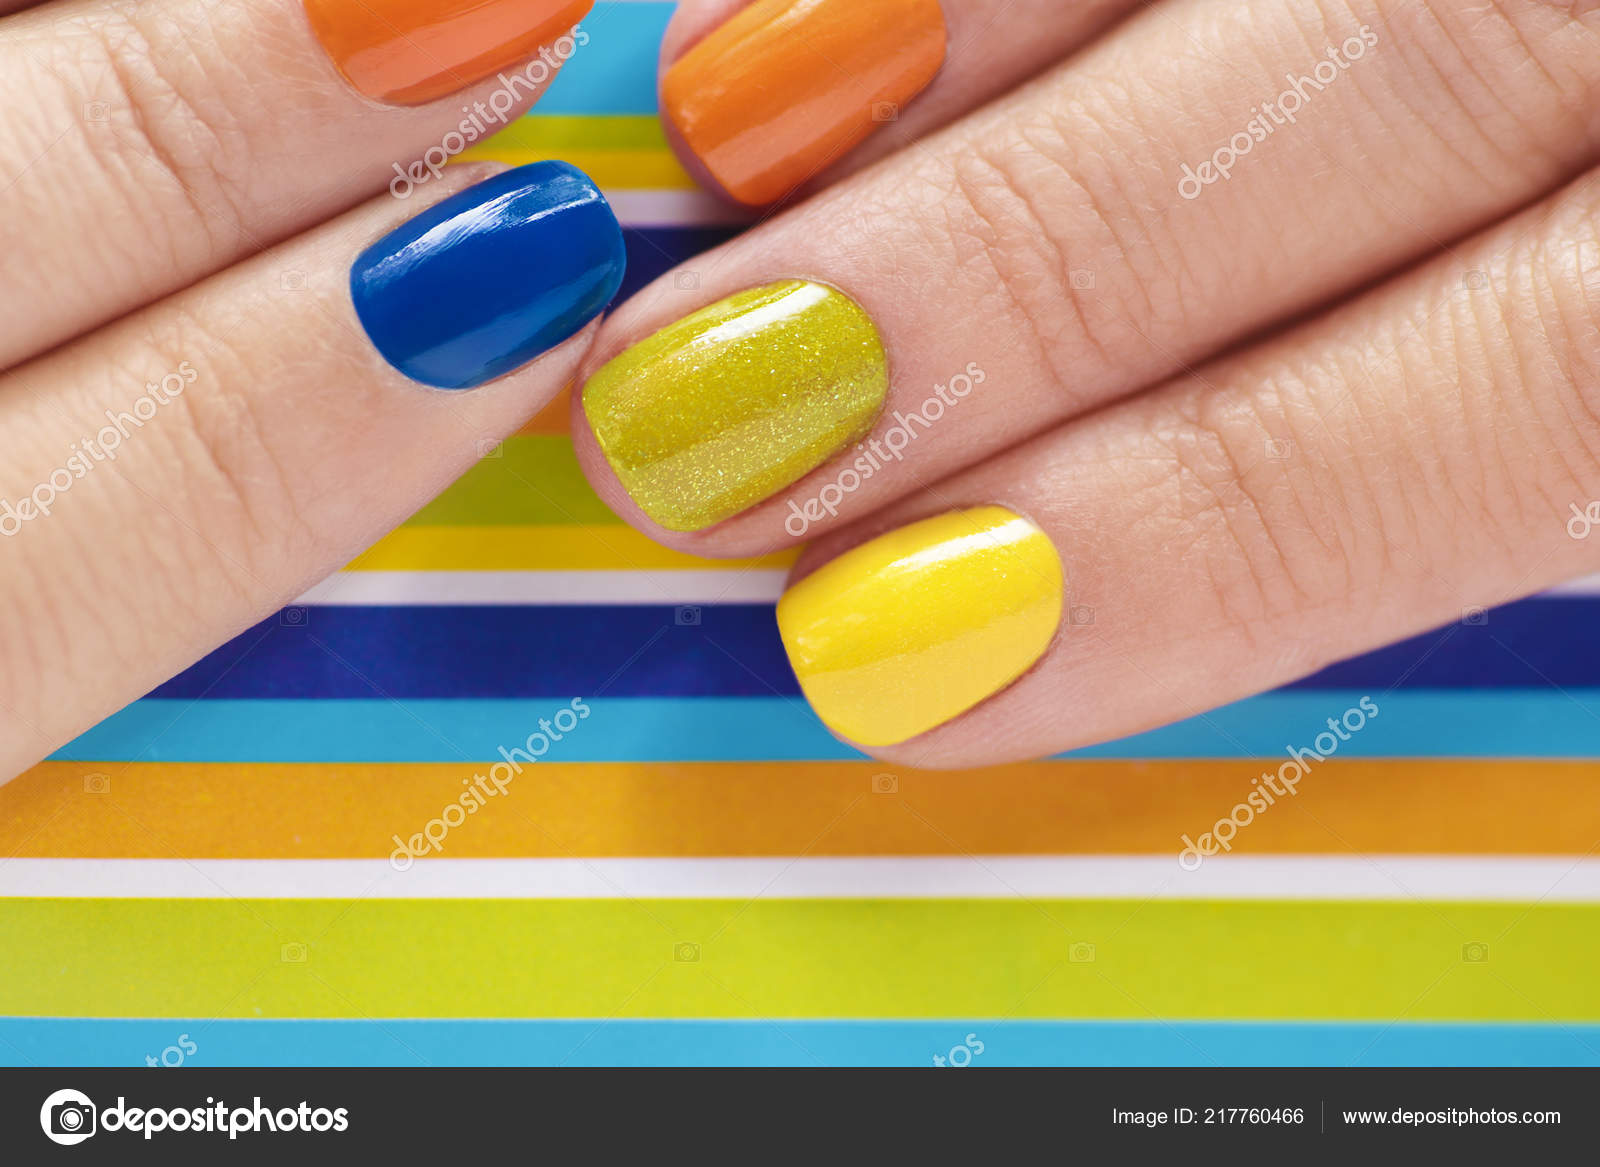 Colorful Bright Manicure Orange Blue Yellow Nail Polish